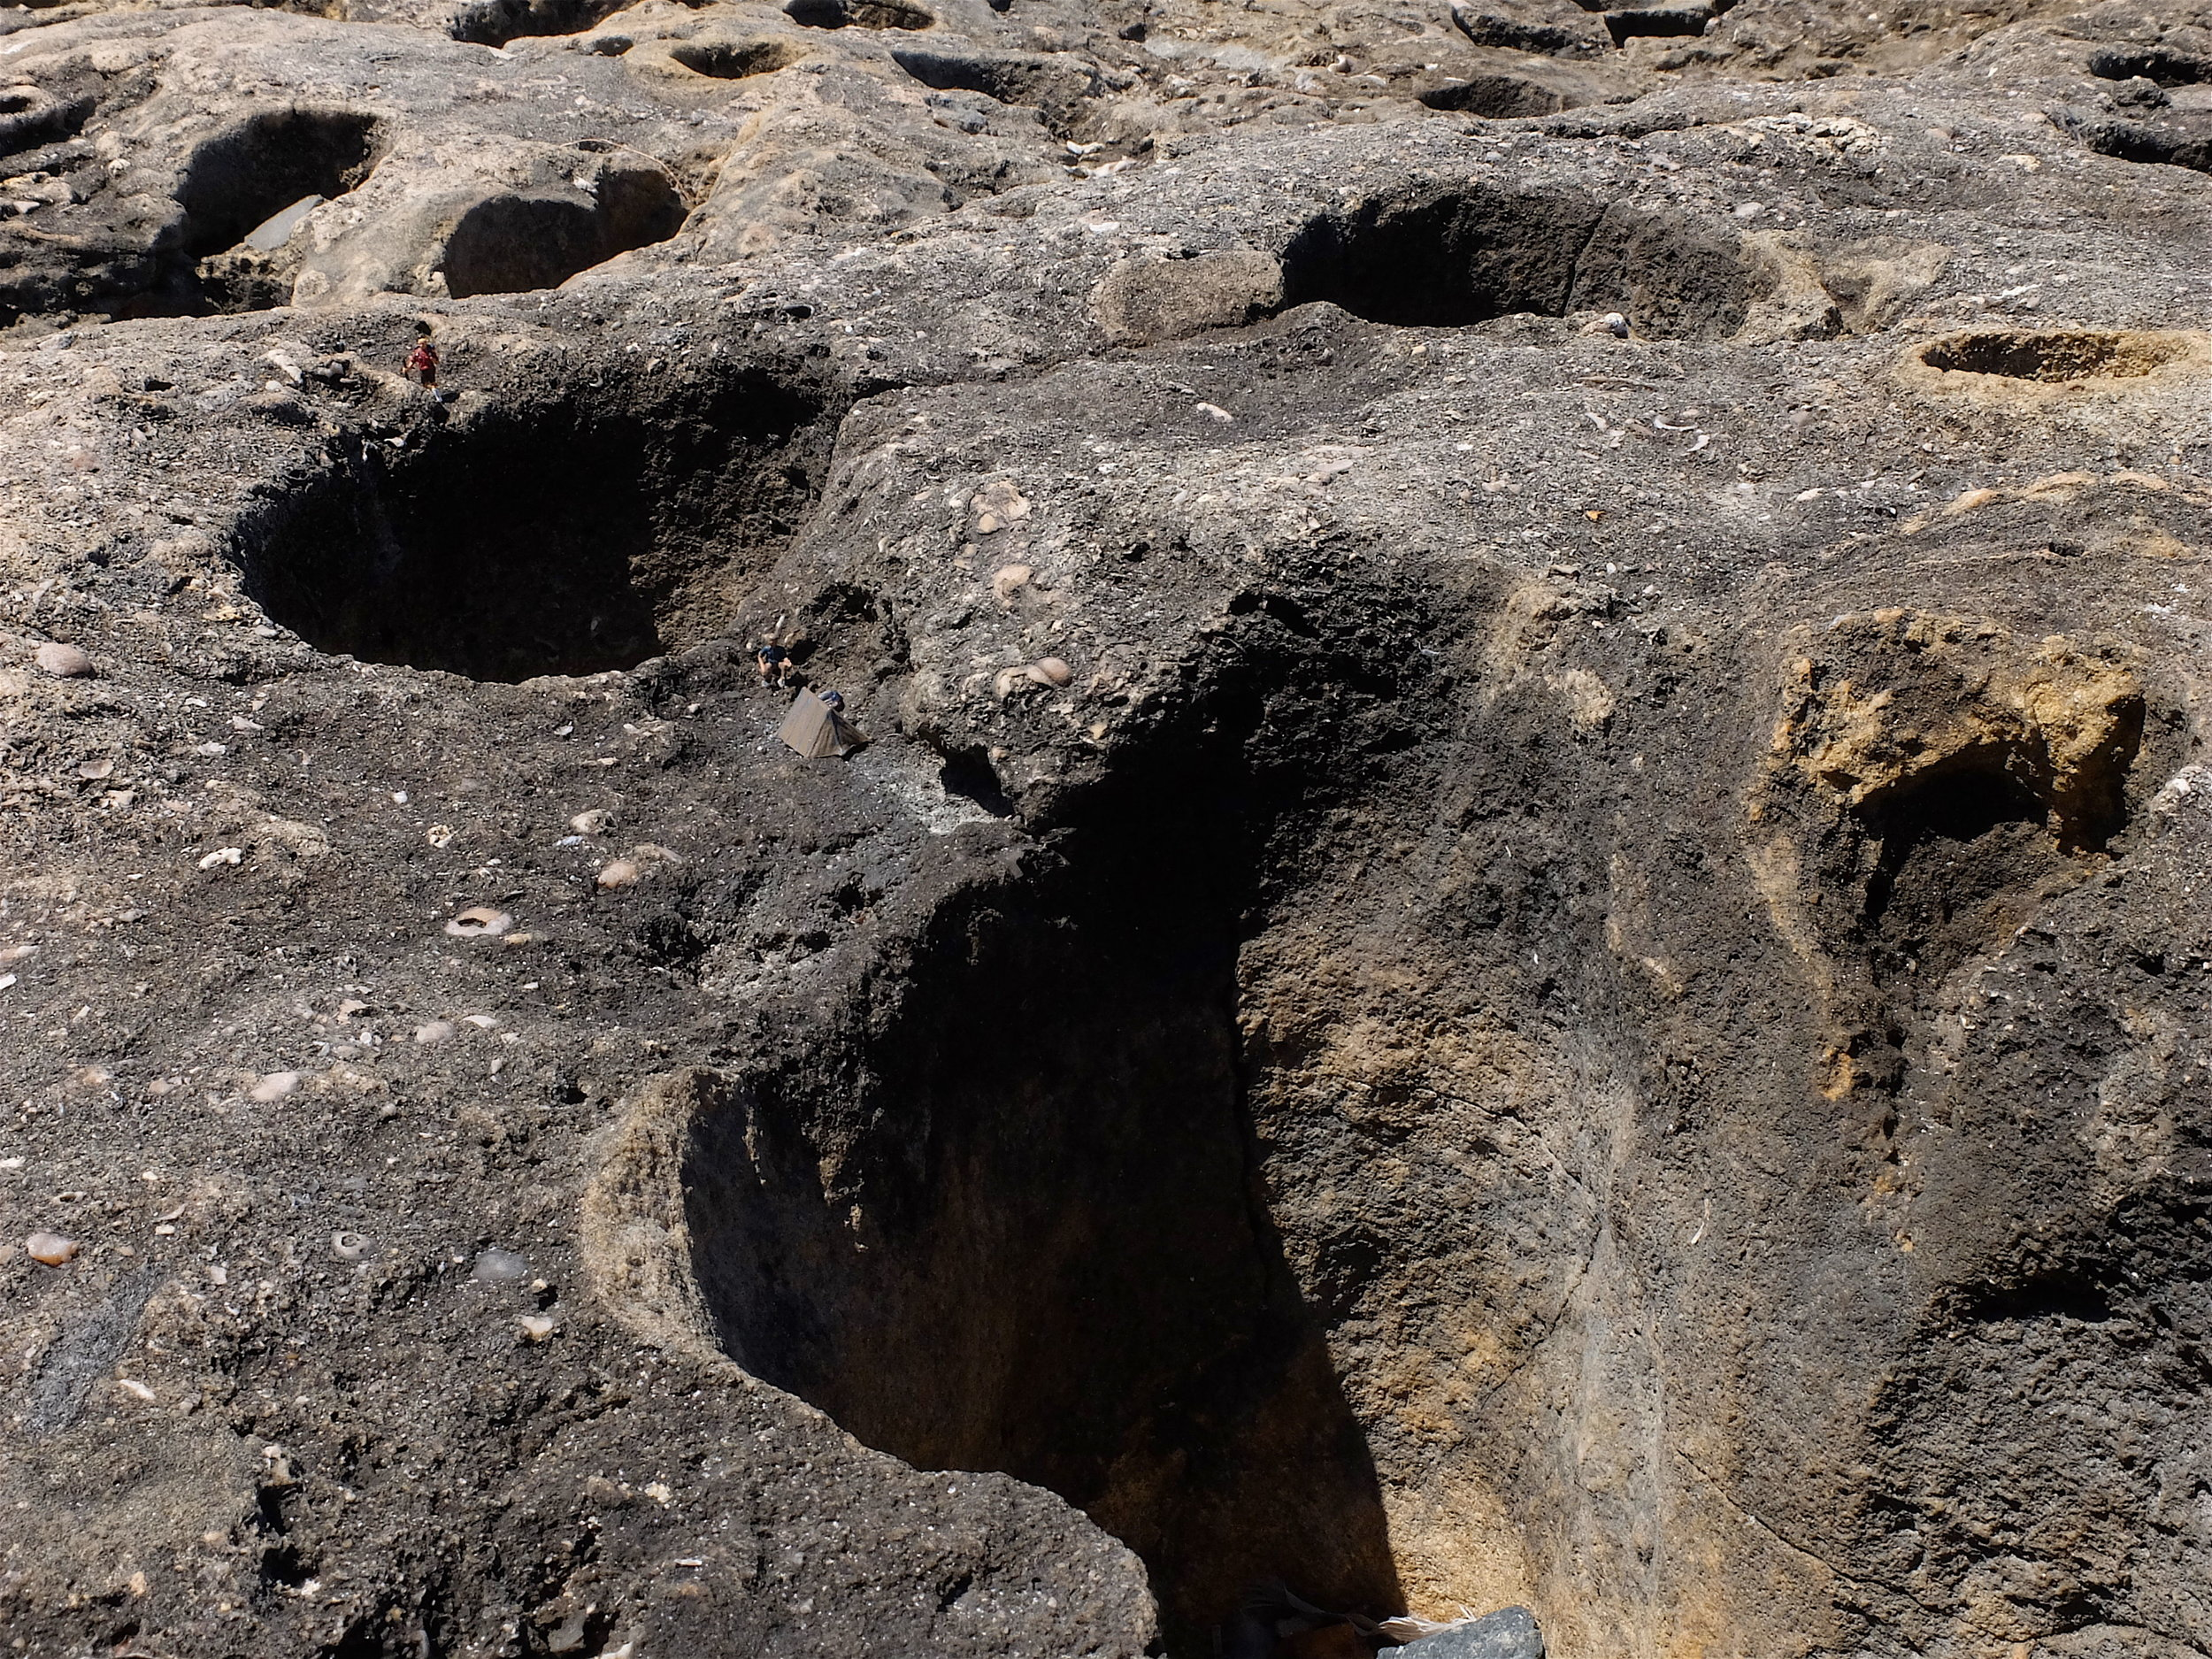 7. In the country of the sinkholes